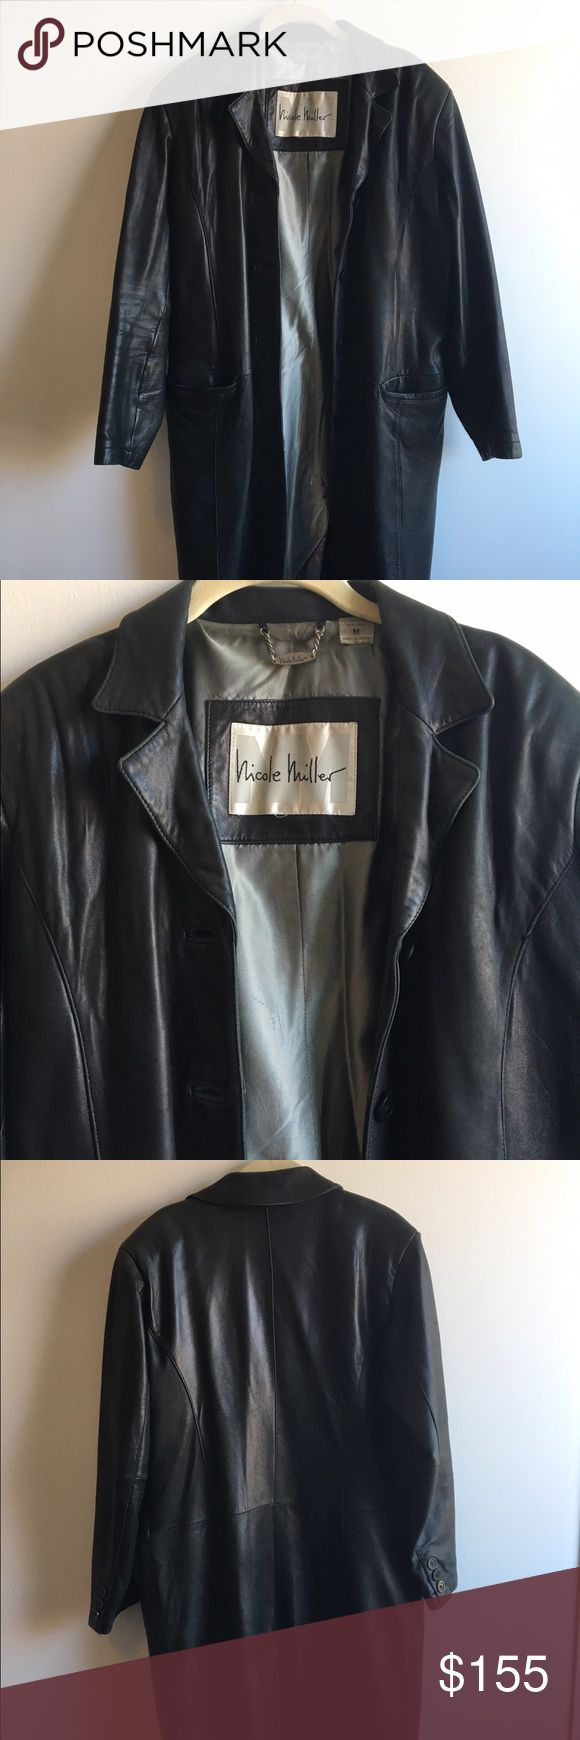 Nicole Miller Genuine Leather Trench Coat This designer trench coat is 100% leather in great condition. Very 90s but timeless classic piece. Goes with literally everything. Nicole Miller Jackets & Coats Trench Coats